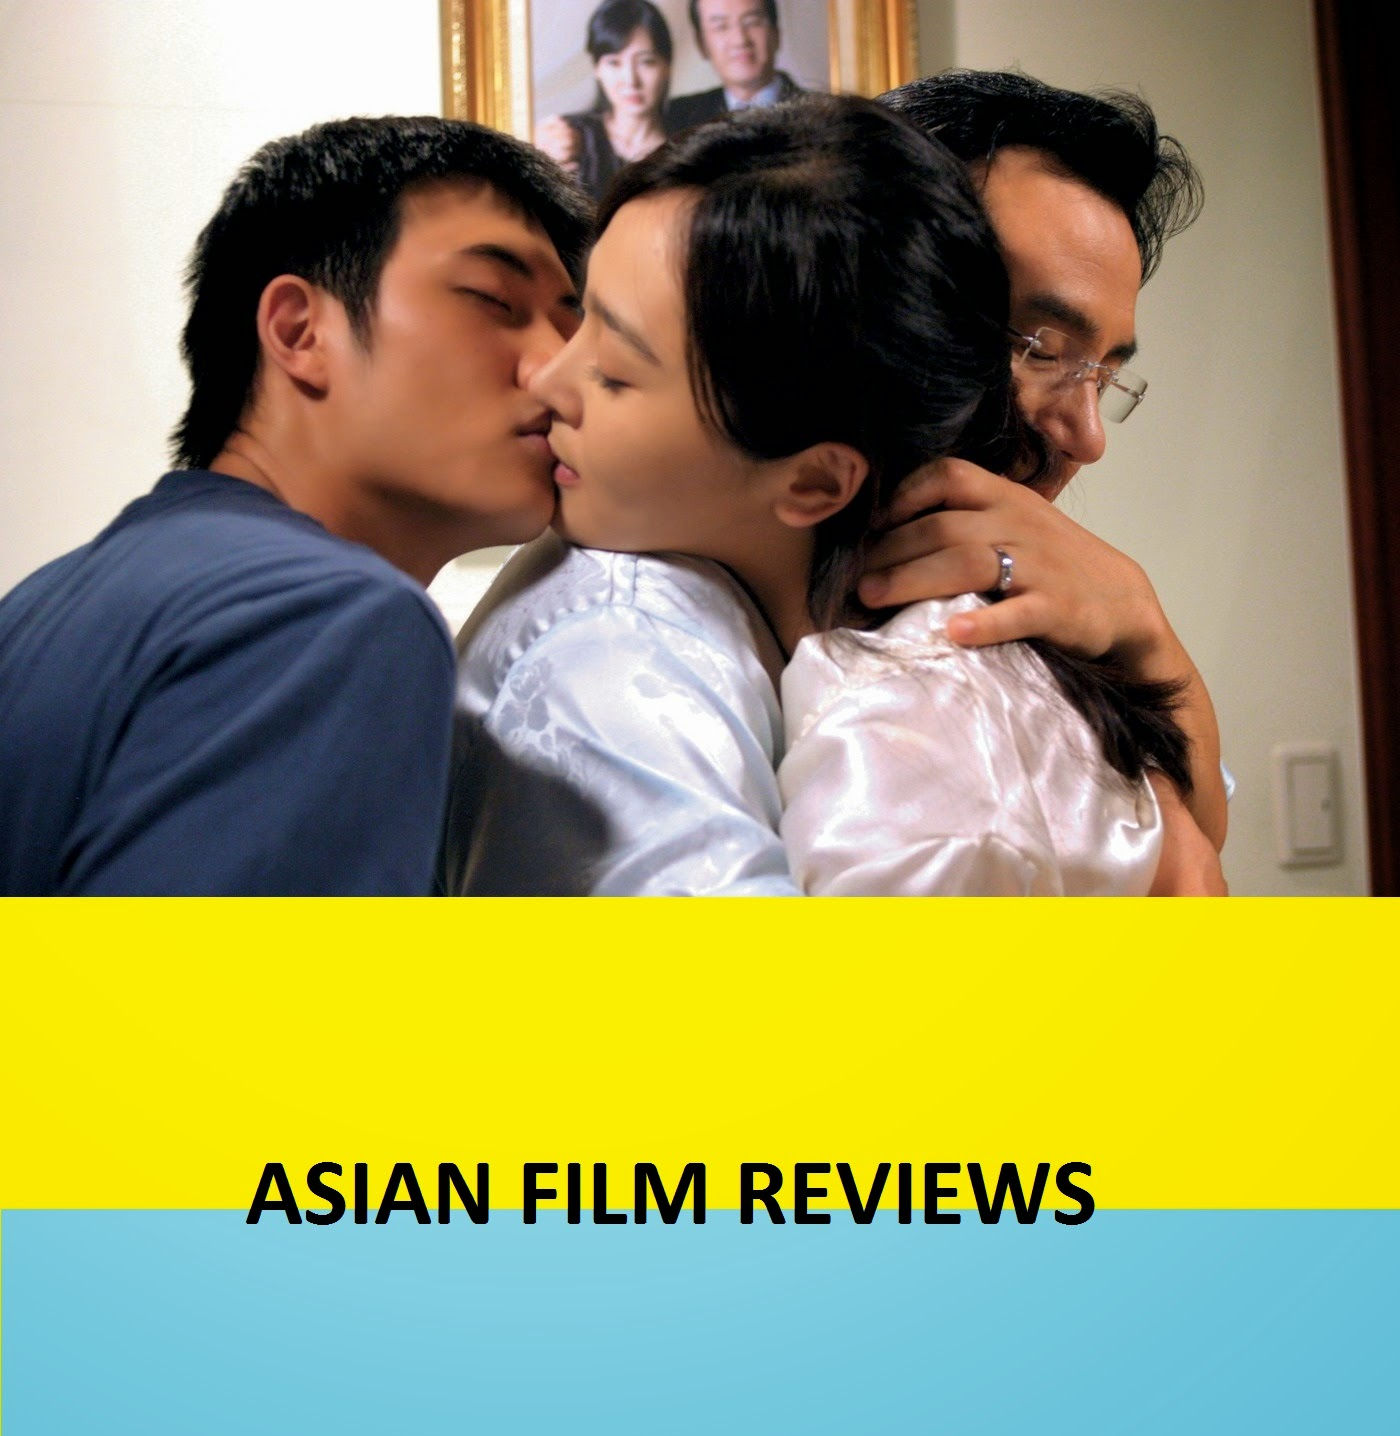 Asian Film Reviews